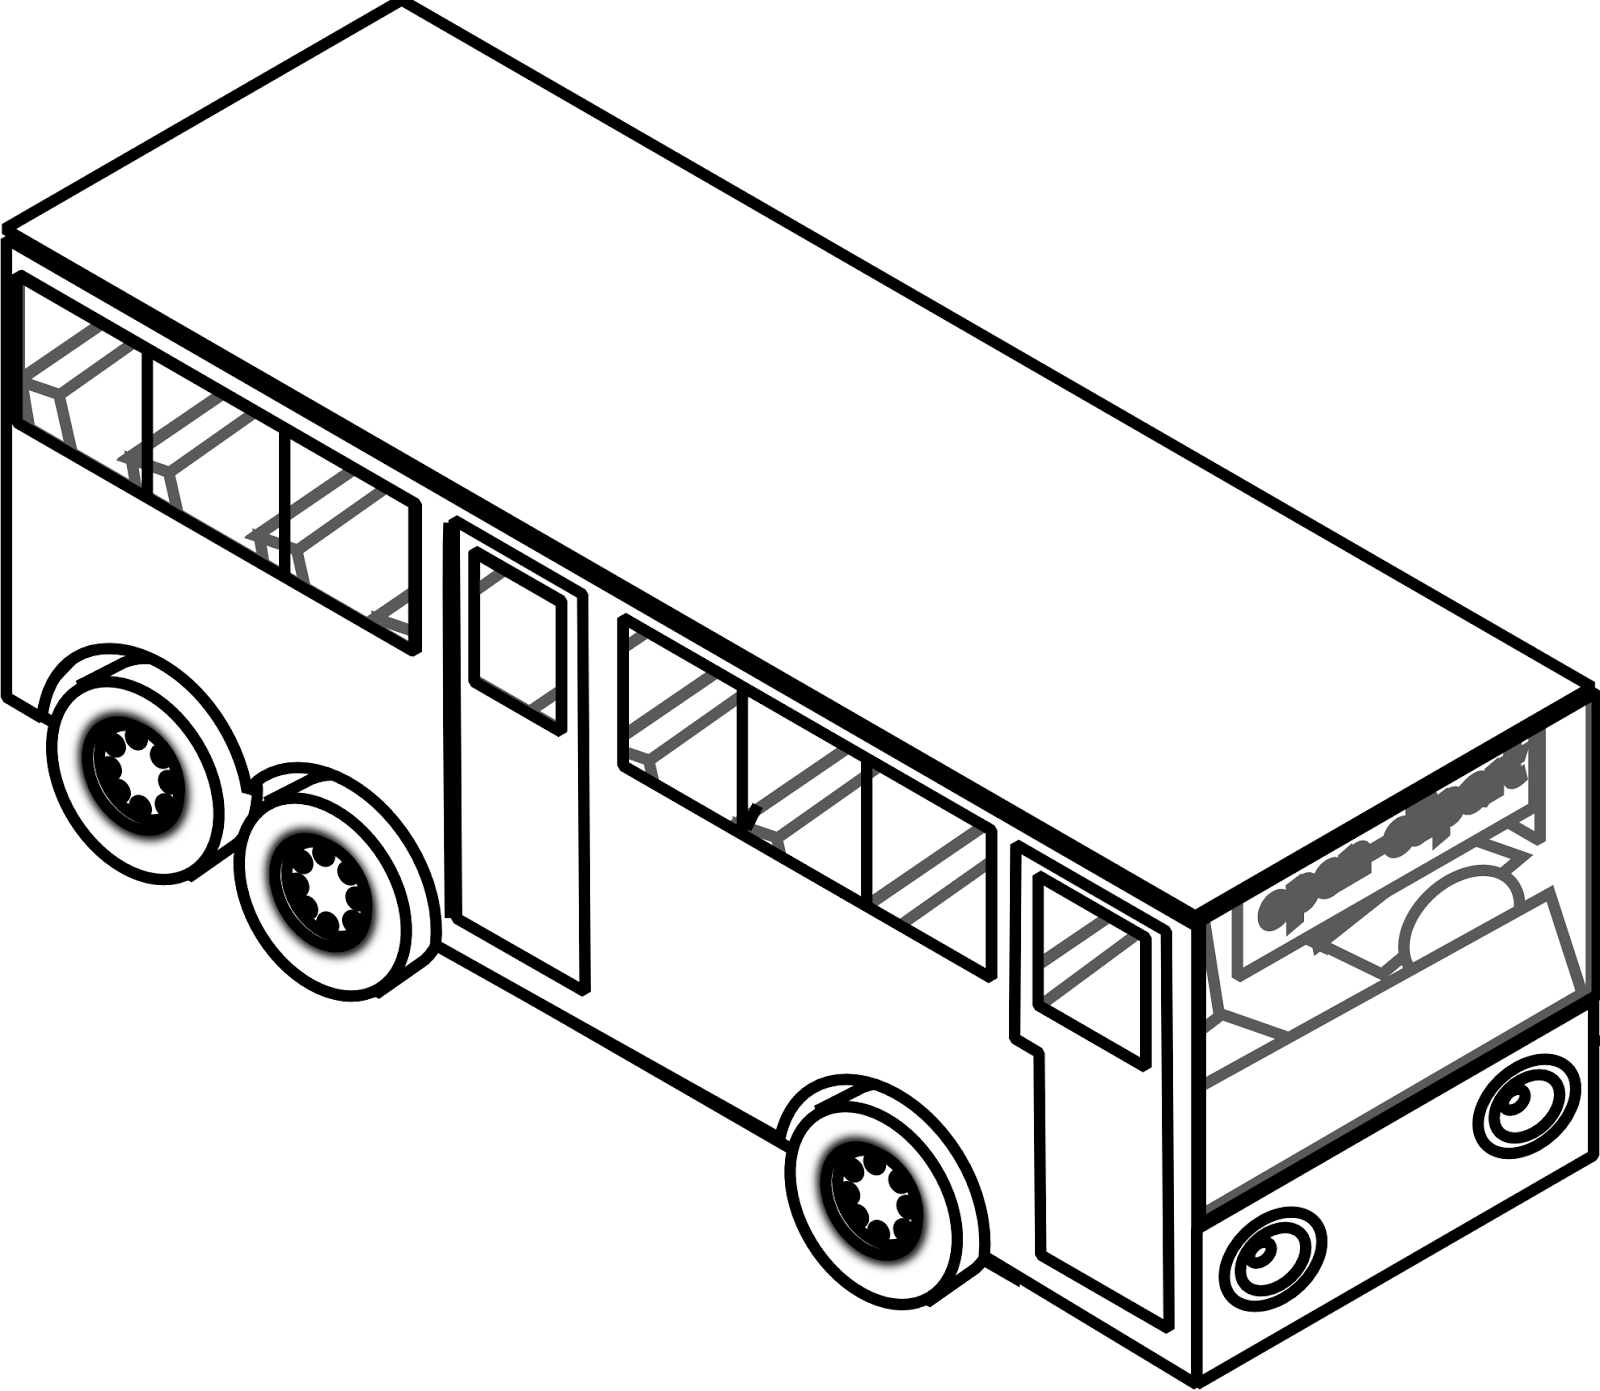 Transportation For Kids Coloring Pages: Bus The Car Coloring Pages